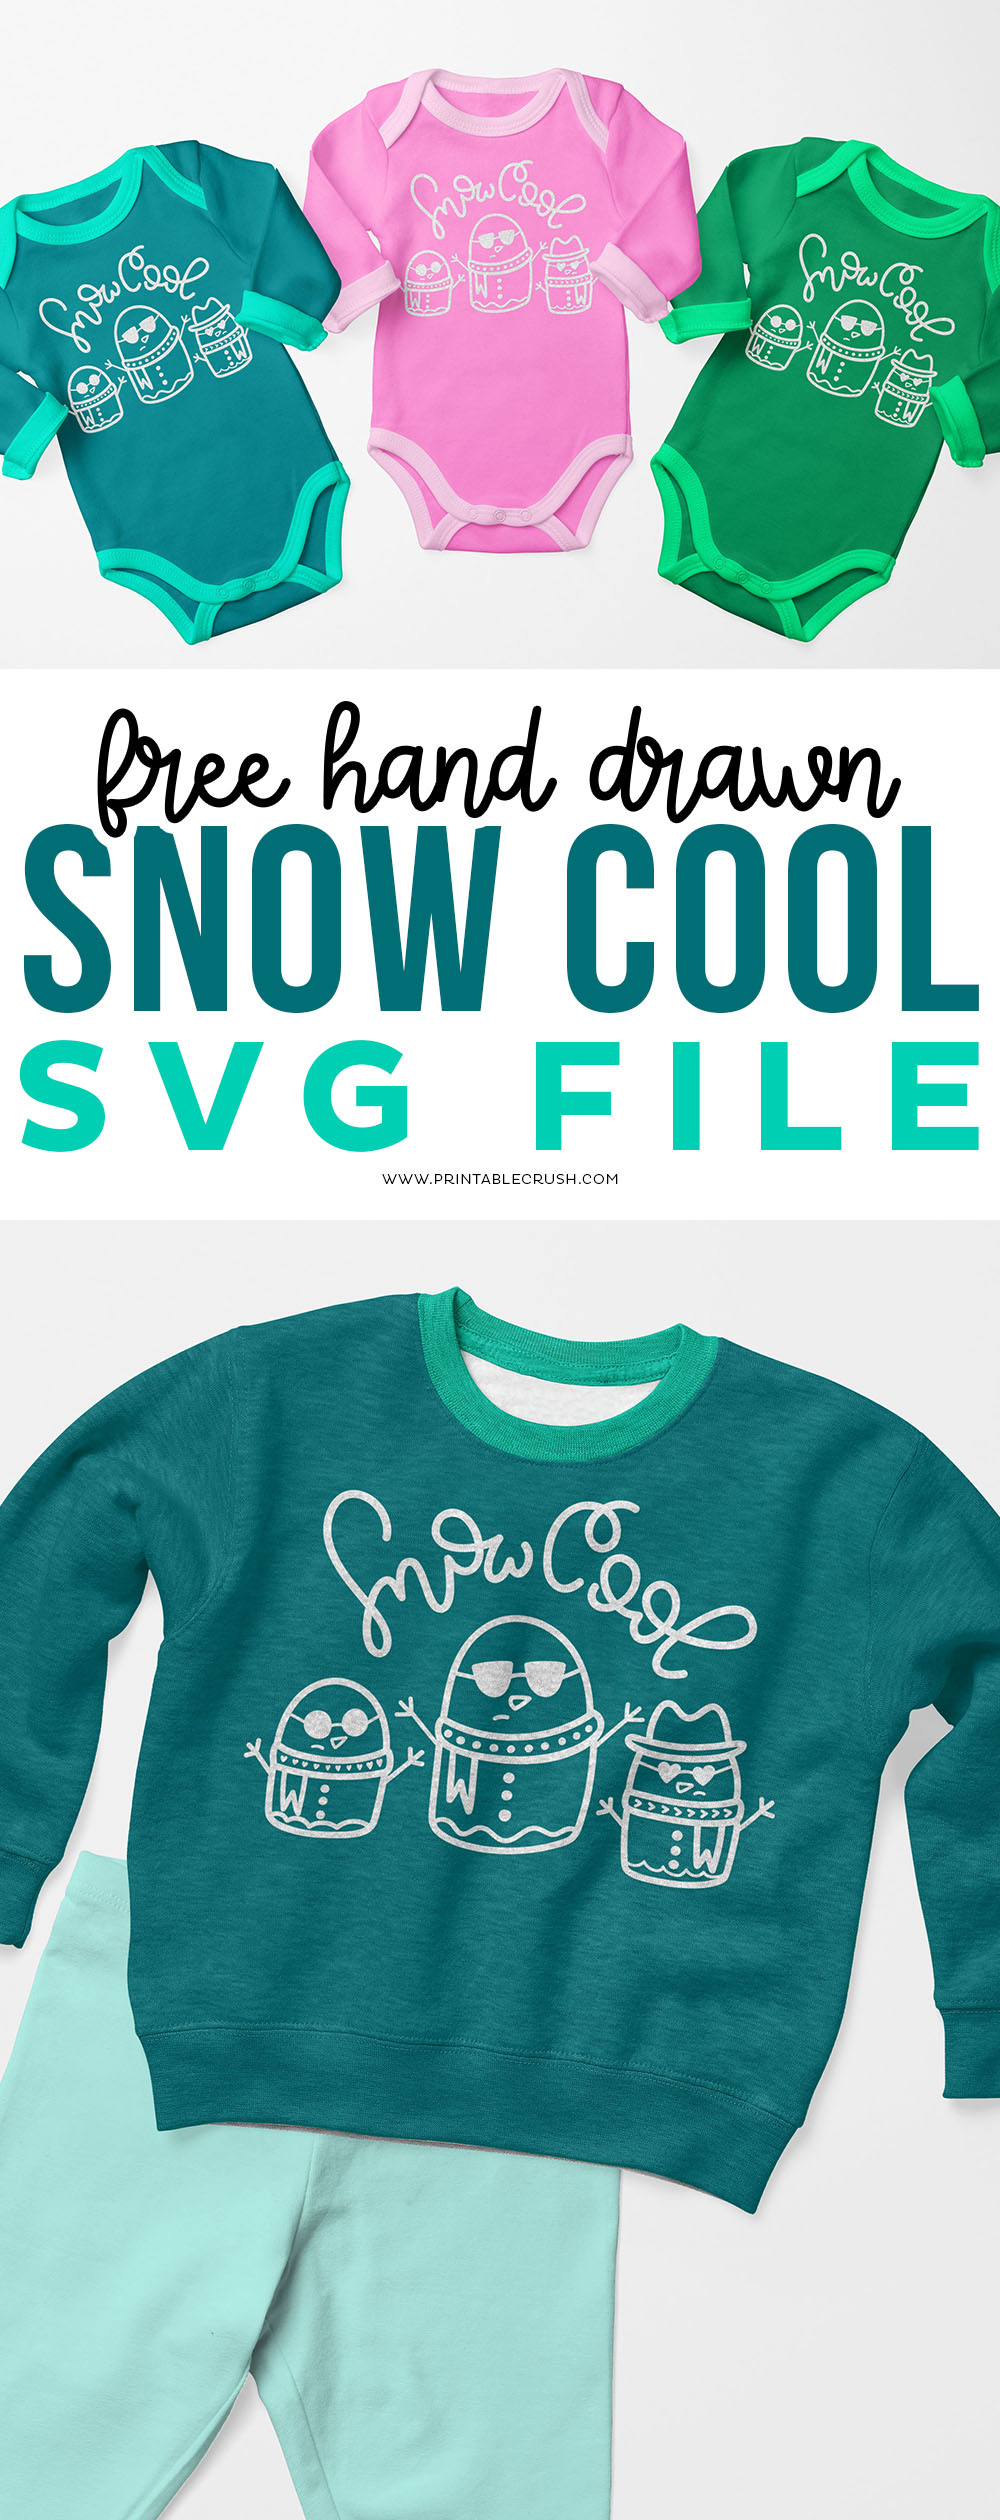 Let's weather through the winter with this FREE Snowman SVG File for Cricut Projects. This Snow Cool SVG File would make the perfect t-shirt! via @printablecrush